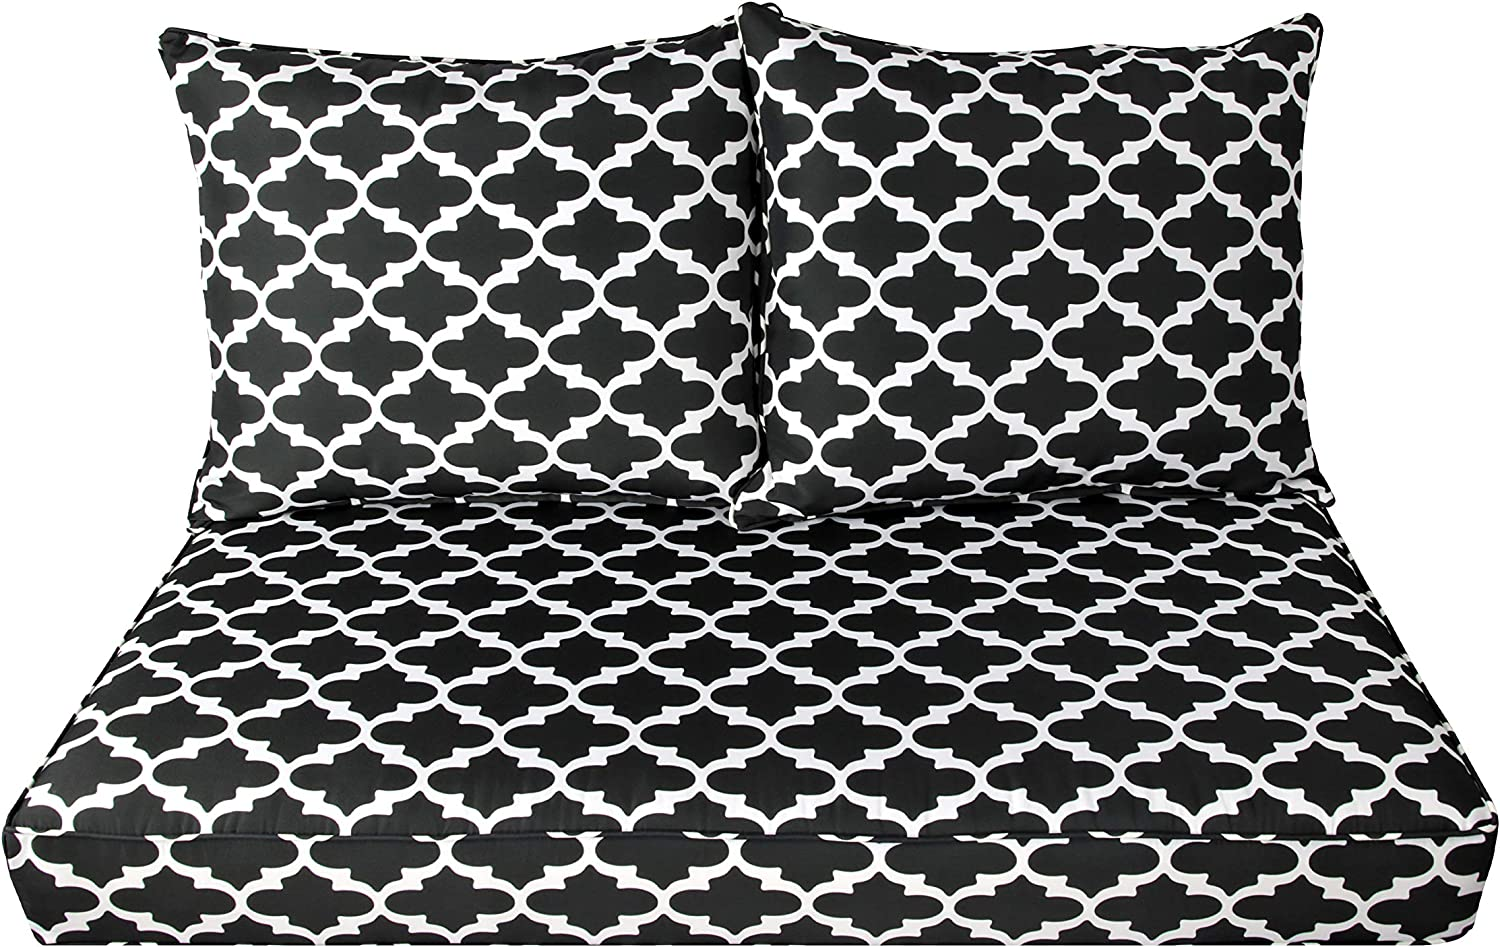 BOSSIMA Patio Furniture Cushions Comfort Deep Seat Loveseat Cushion Indoor Outdoor Seating Cushions (Black White Flower)